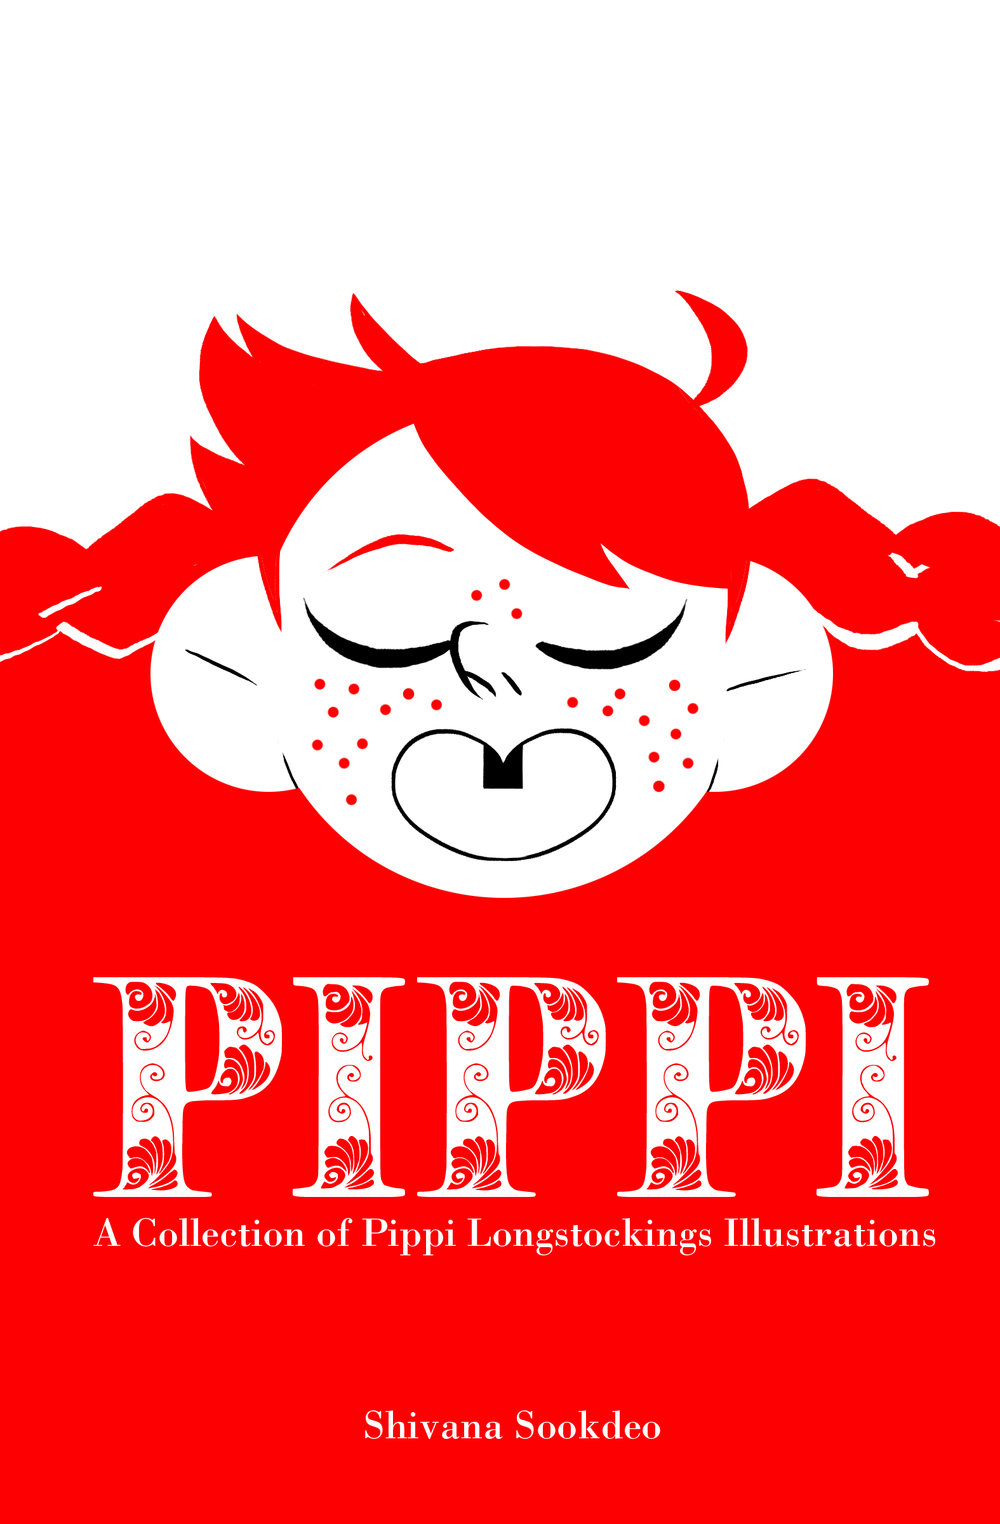 - PIPPI(2017)An assortment of Pippi Longstocking illustrations from Inktober, collected in a zine for TCAF 2017.